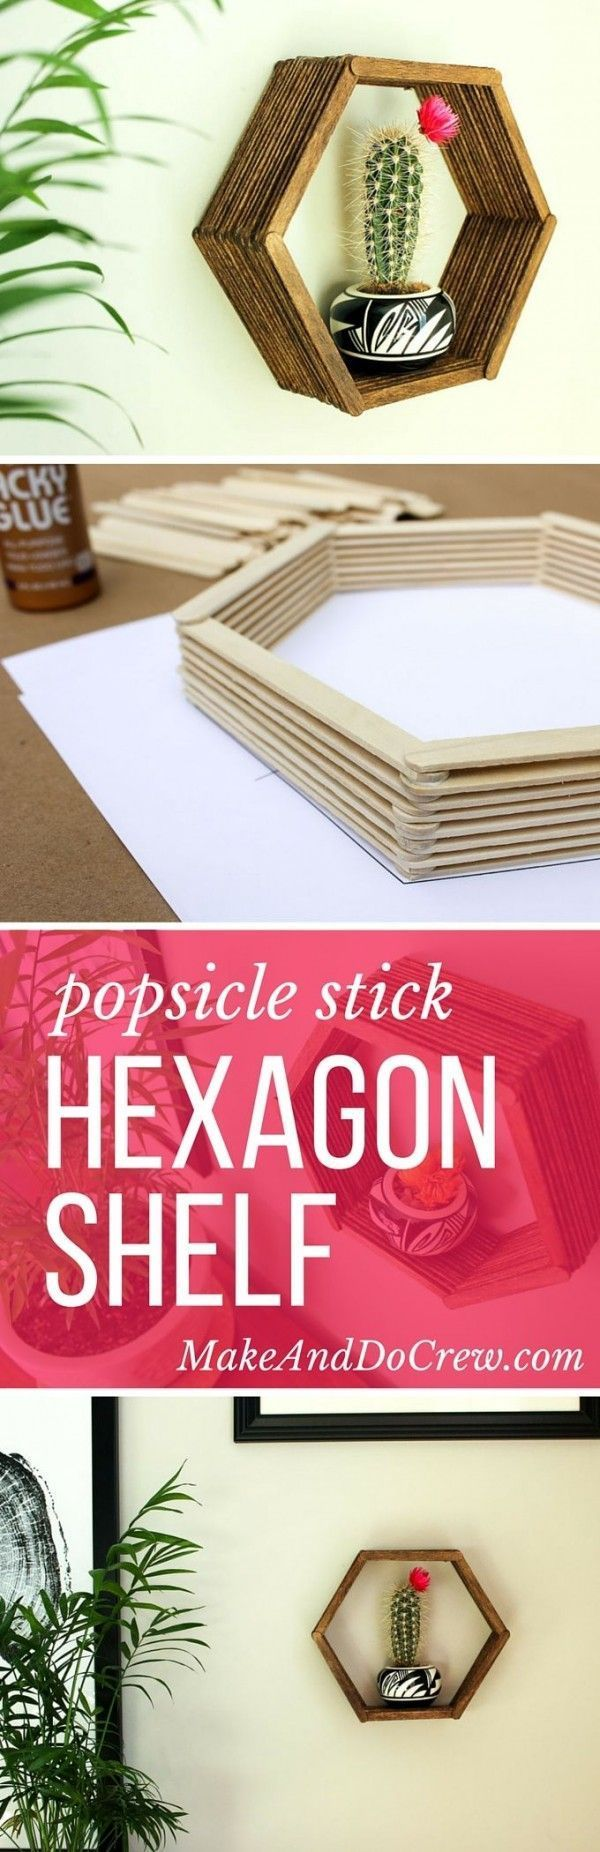 hexagon shelf - Home Decor Crafts